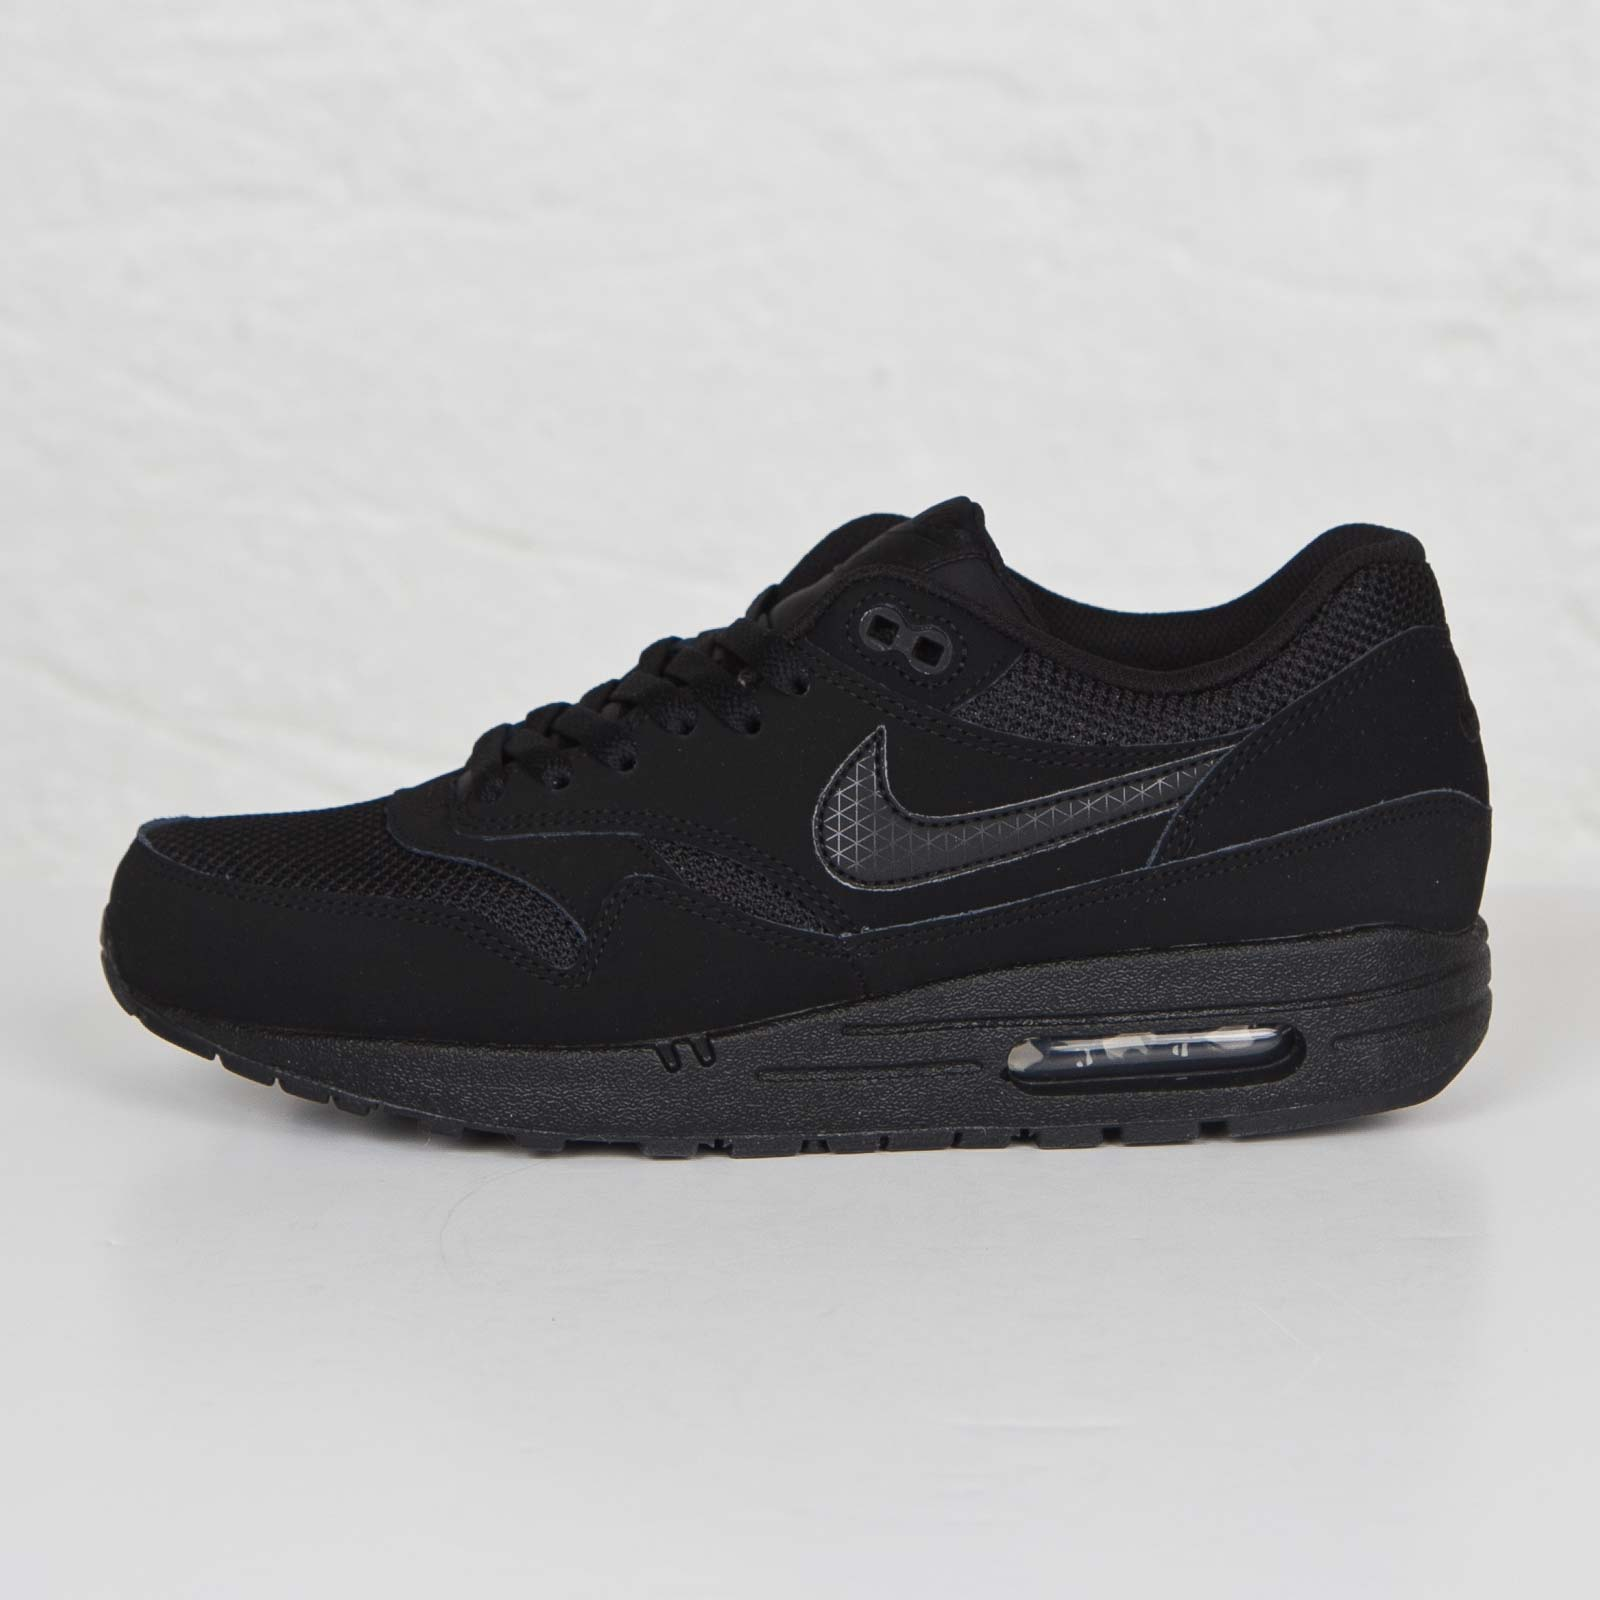 100% authentic 0e34b 81459 ... Nike Air Max 1 Essential ...